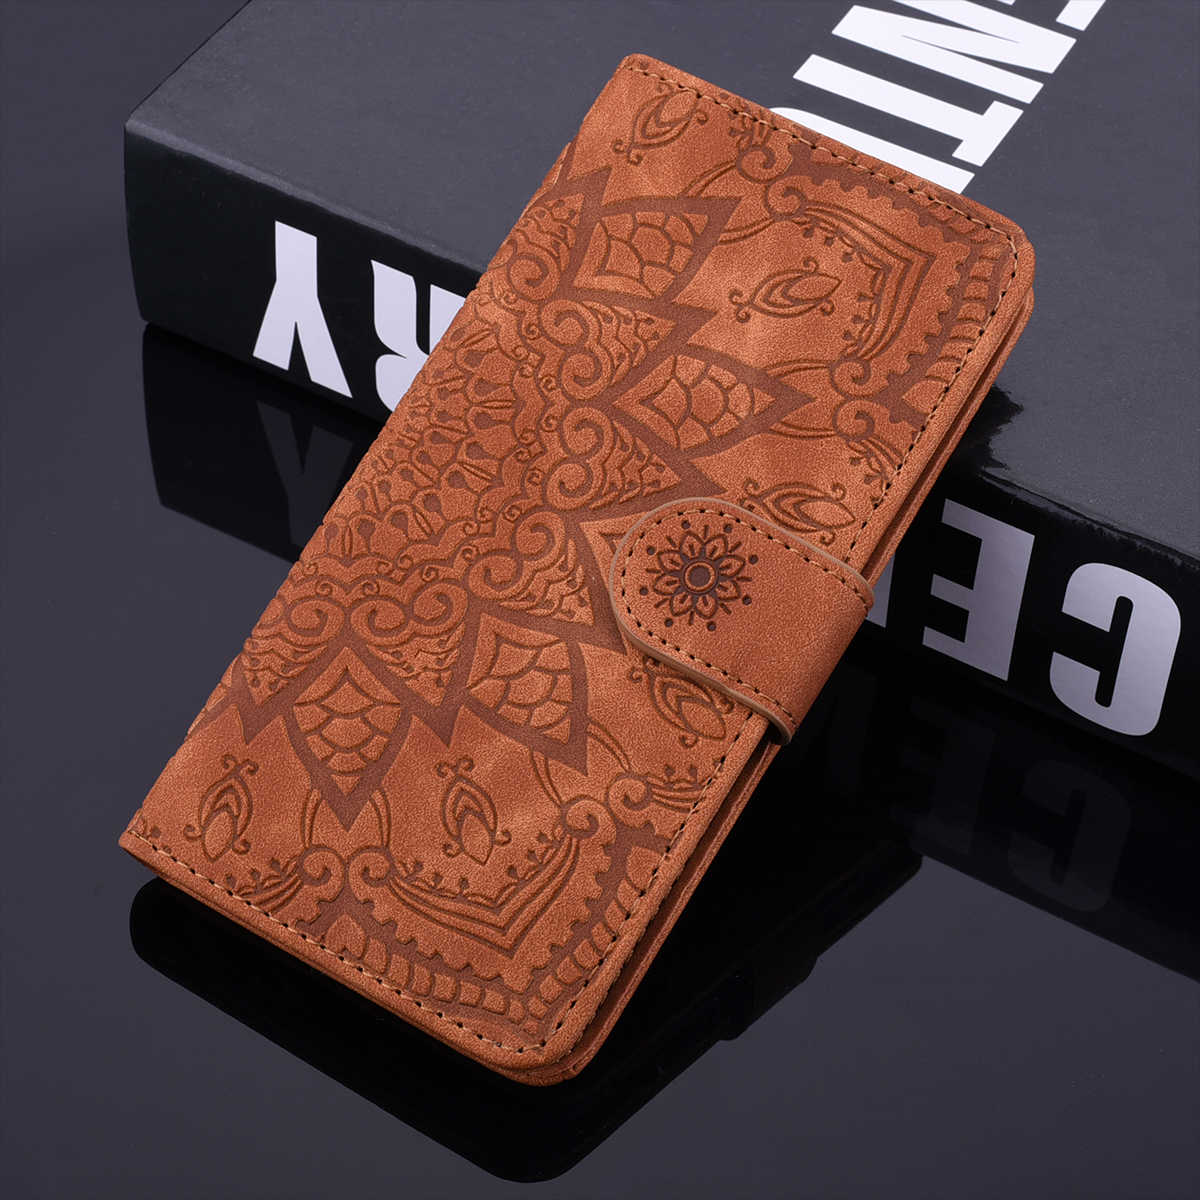 حافظة لهاتف هواوي P40 P20 P30 Pro Mate 30 20 10 Lite P Smart Z Y9 Y7 Y6 2019 Honor 10 9 Lite Flip Wallet Coque